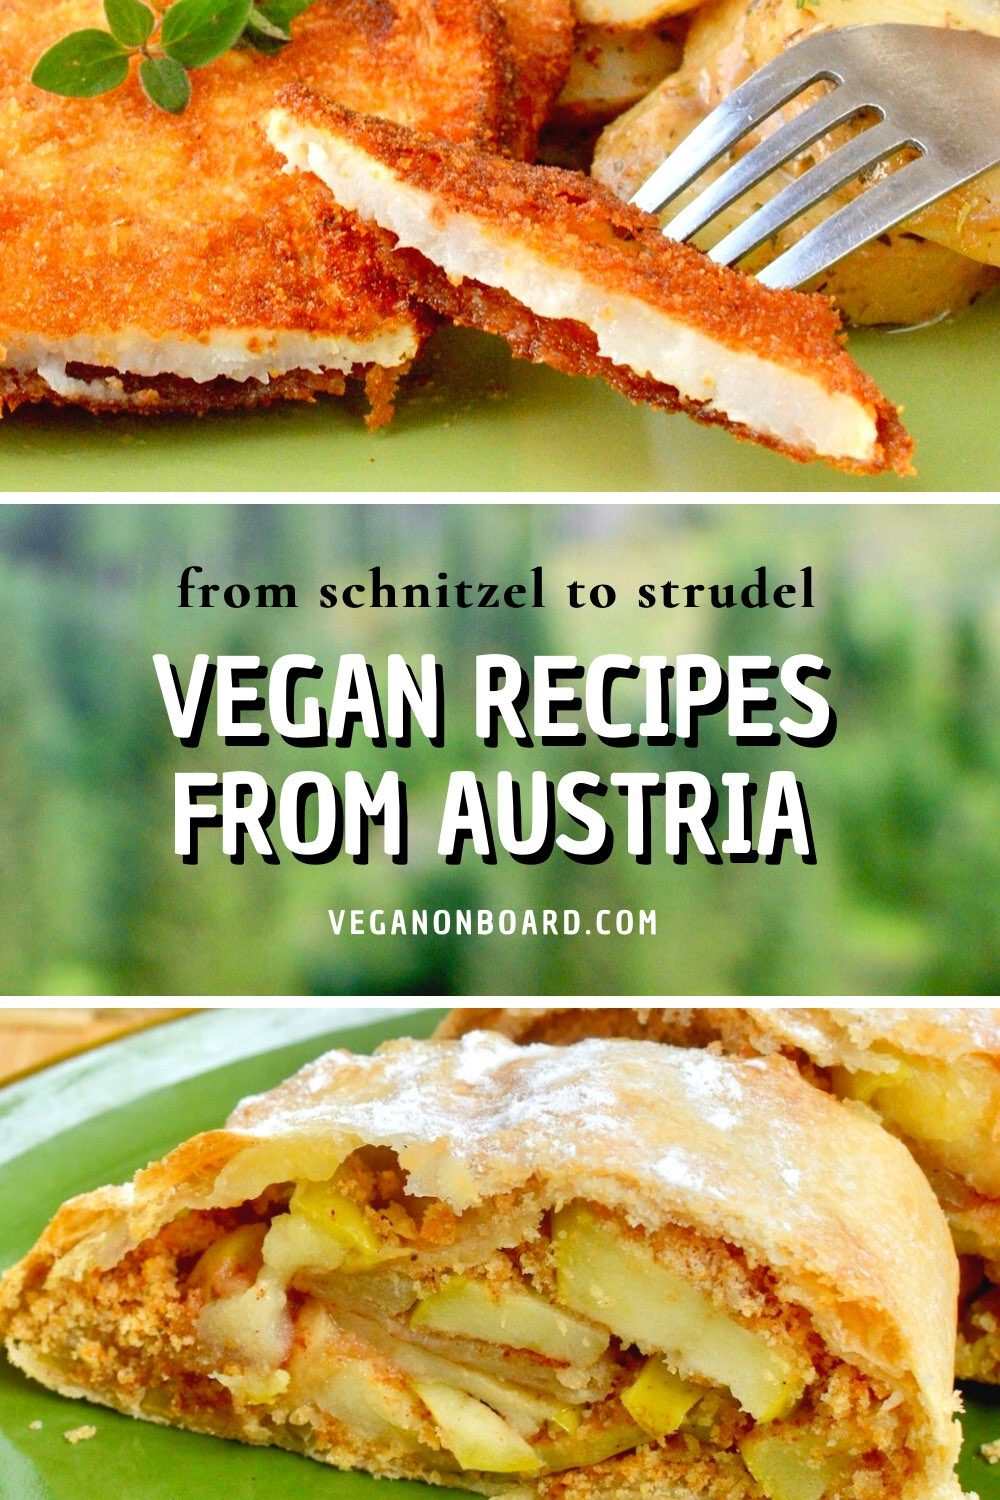 A piece of vegan schnitzel and a vegan apple strudel. Text reads: from schnitzel to strudel... Vegan recipes from Austria